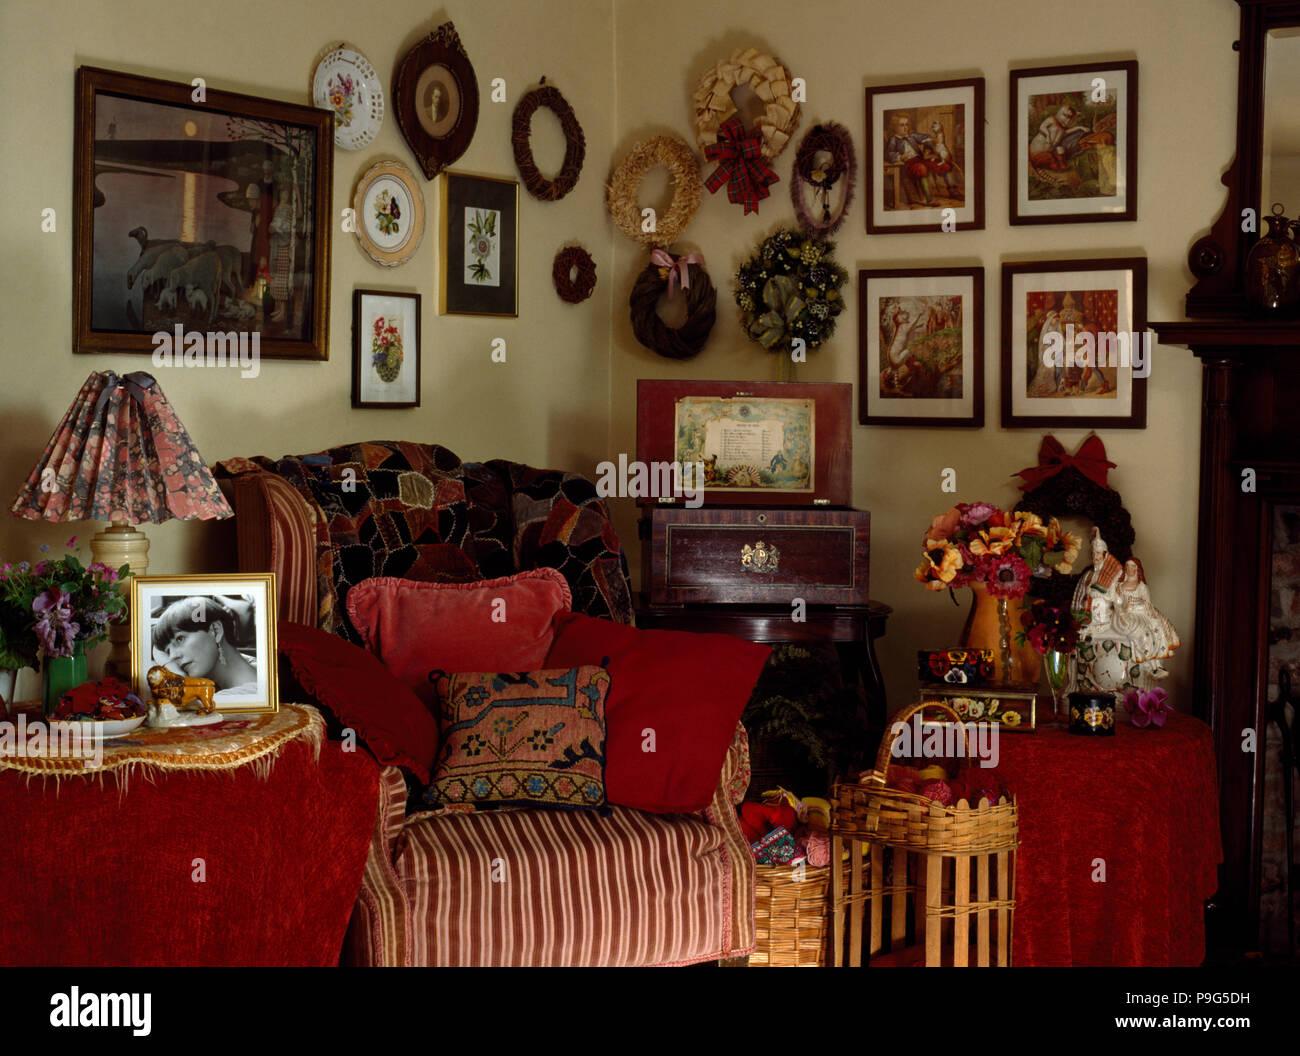 Pictures On Wall In Cluttered Victorian Style Eighties Living Room Stock Photo Alamy